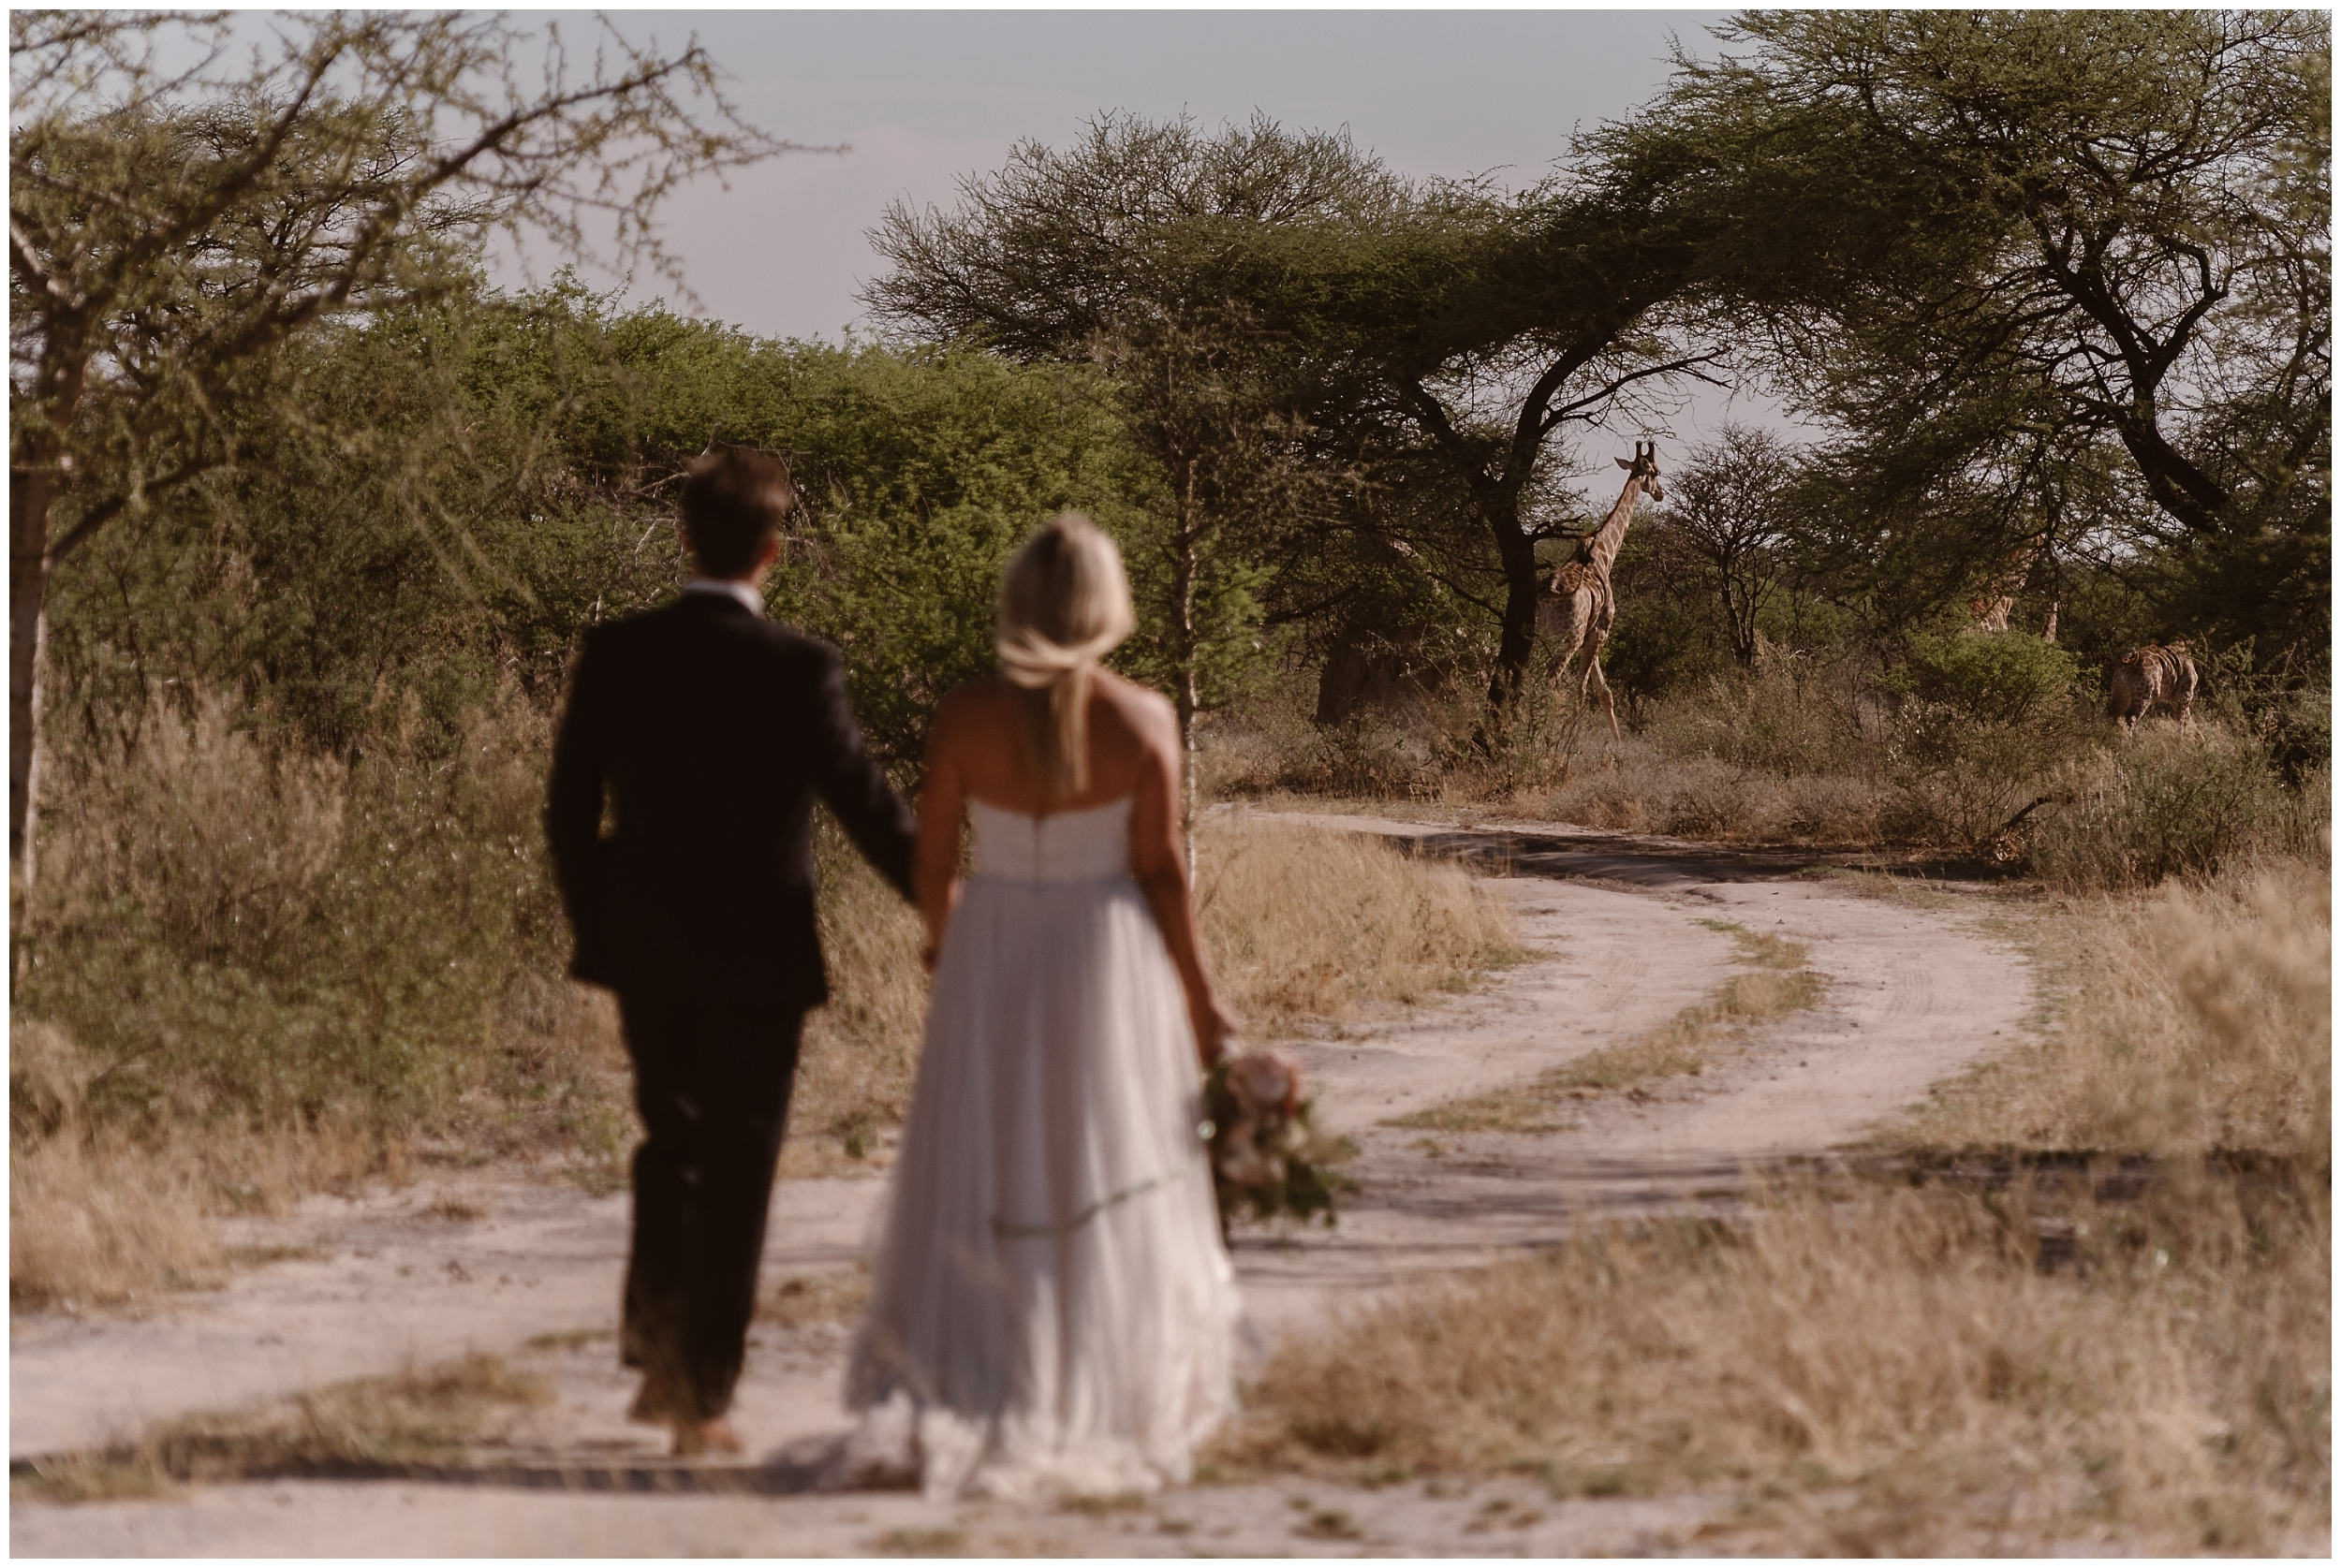 A bride and groom take hands as they walk along a road together in Africa. In the distance, a handful of giraffes can be seen running away. These elopement pictures were captured by Adventure Instead, an elopement wedding photographer.